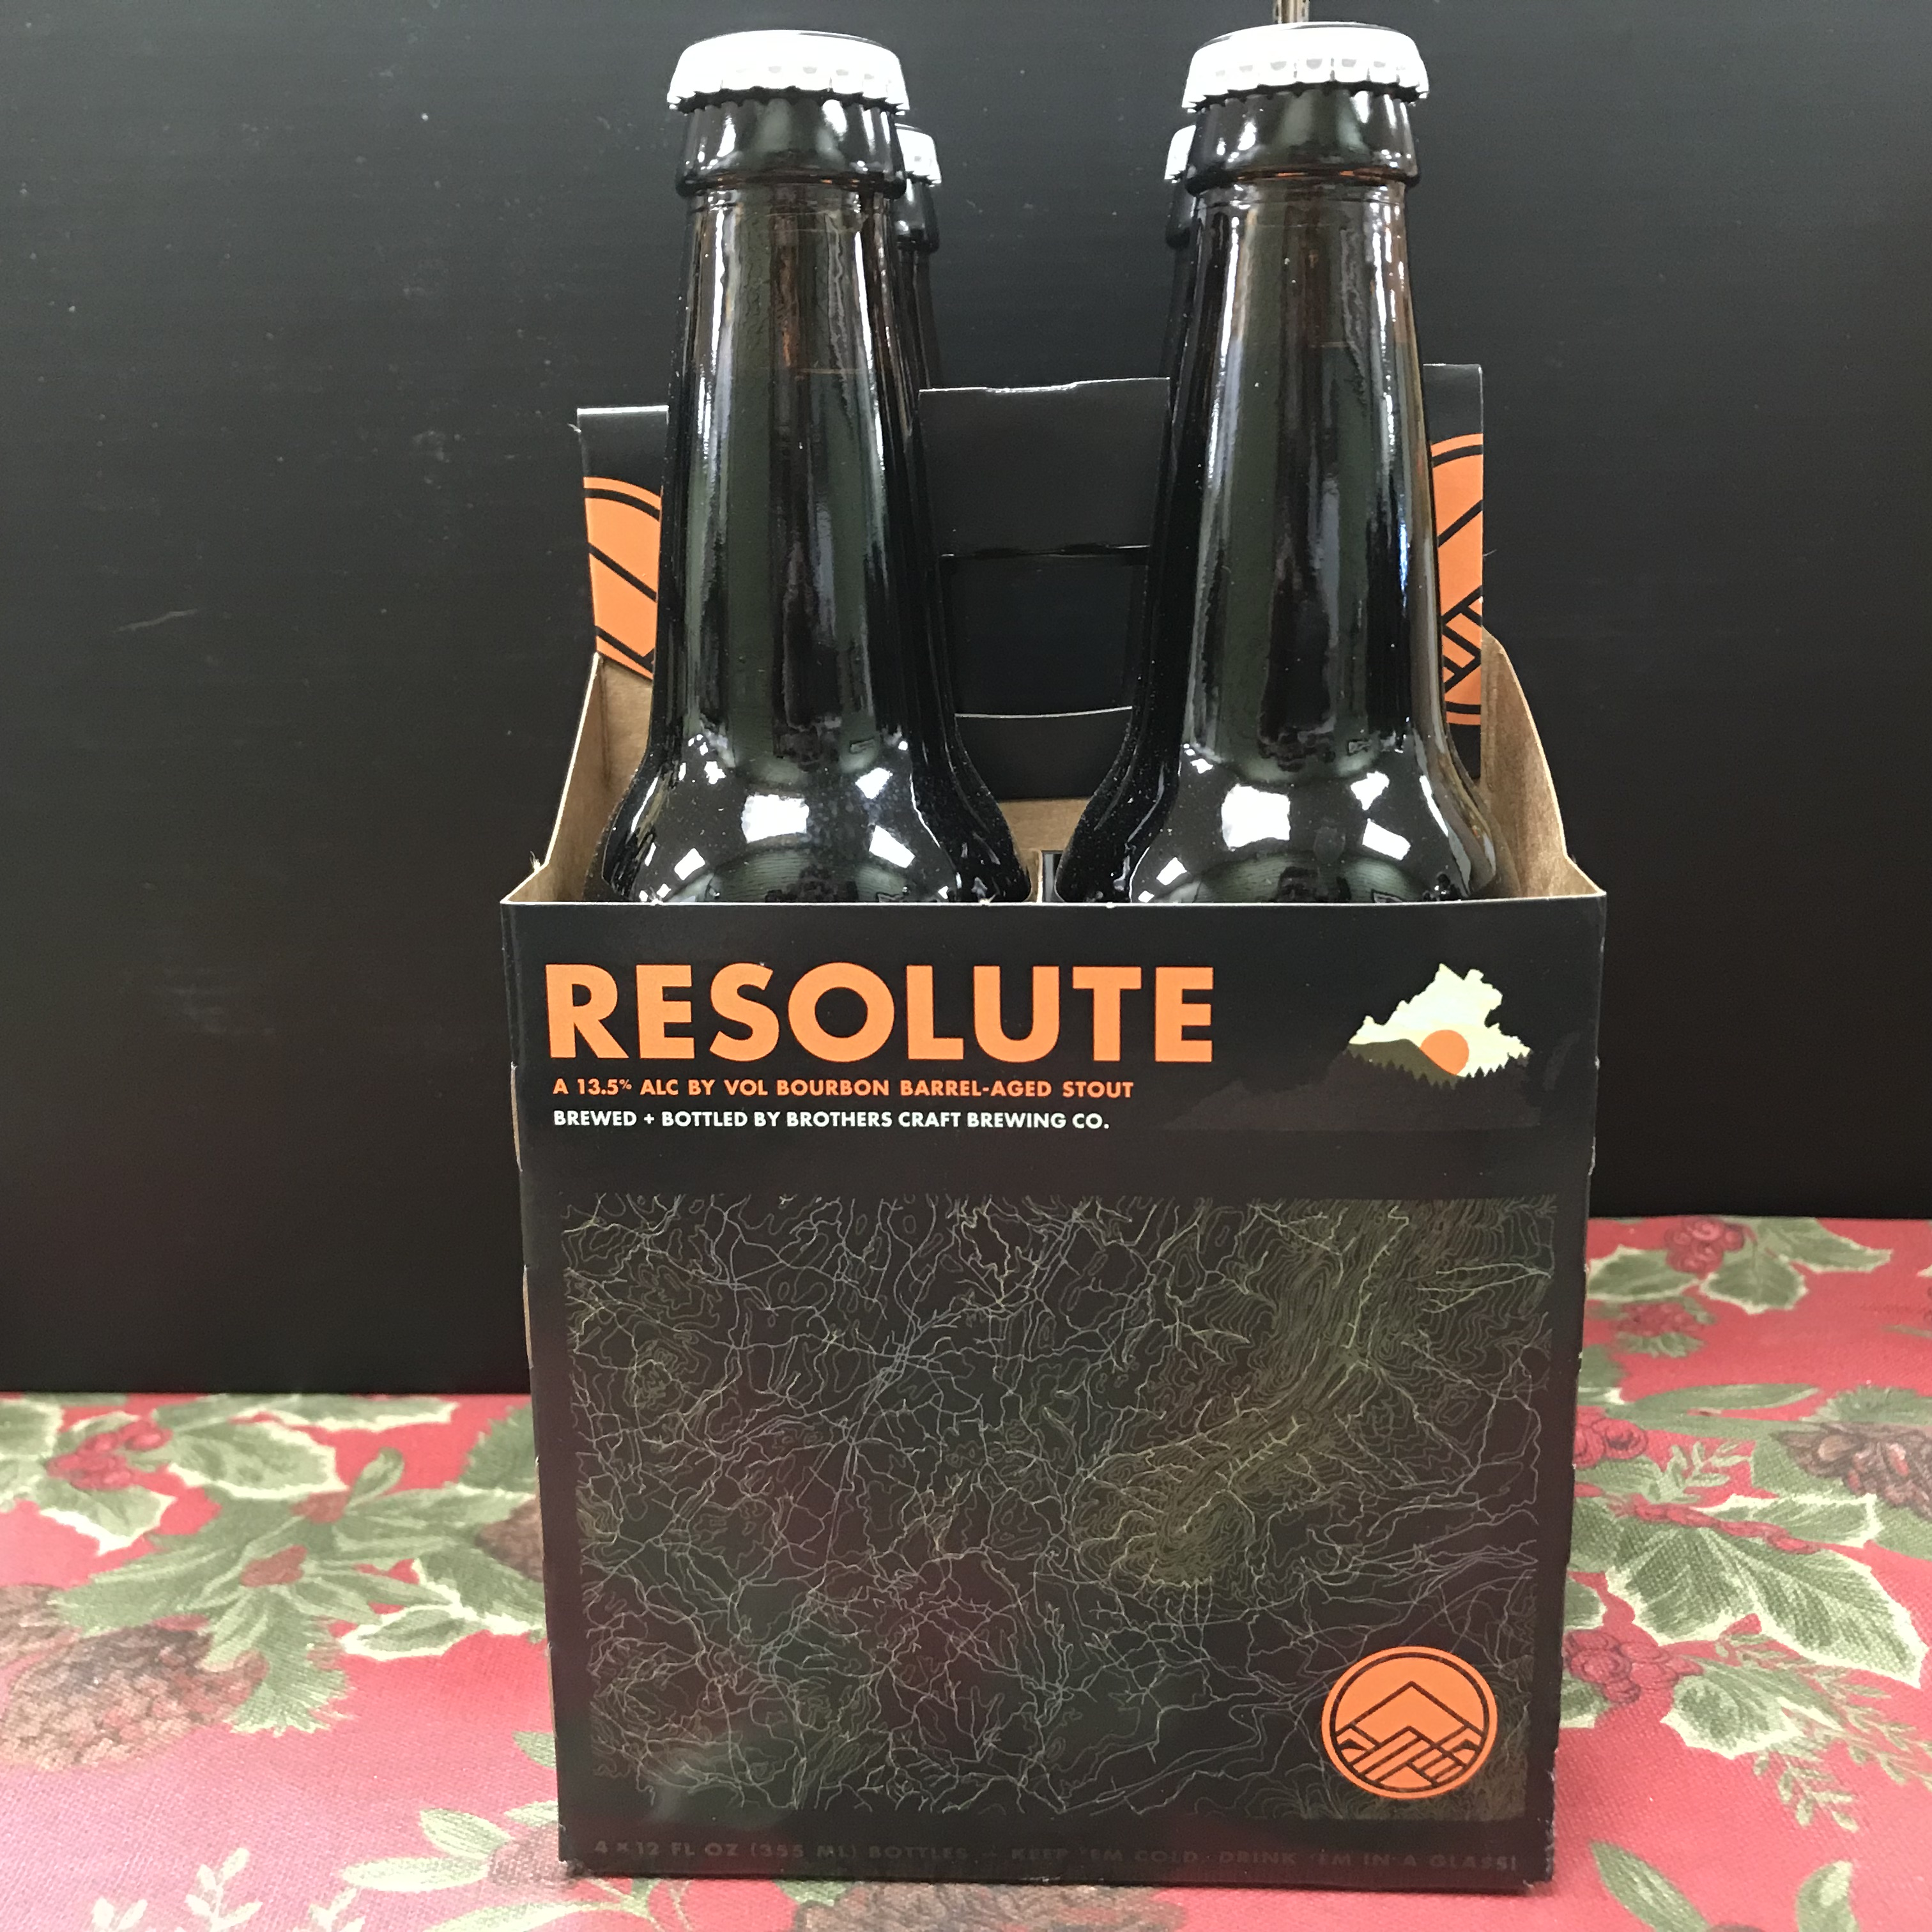 Brothers Resolute Bouron Barrel Aged Stout 4 x 12oz bottles